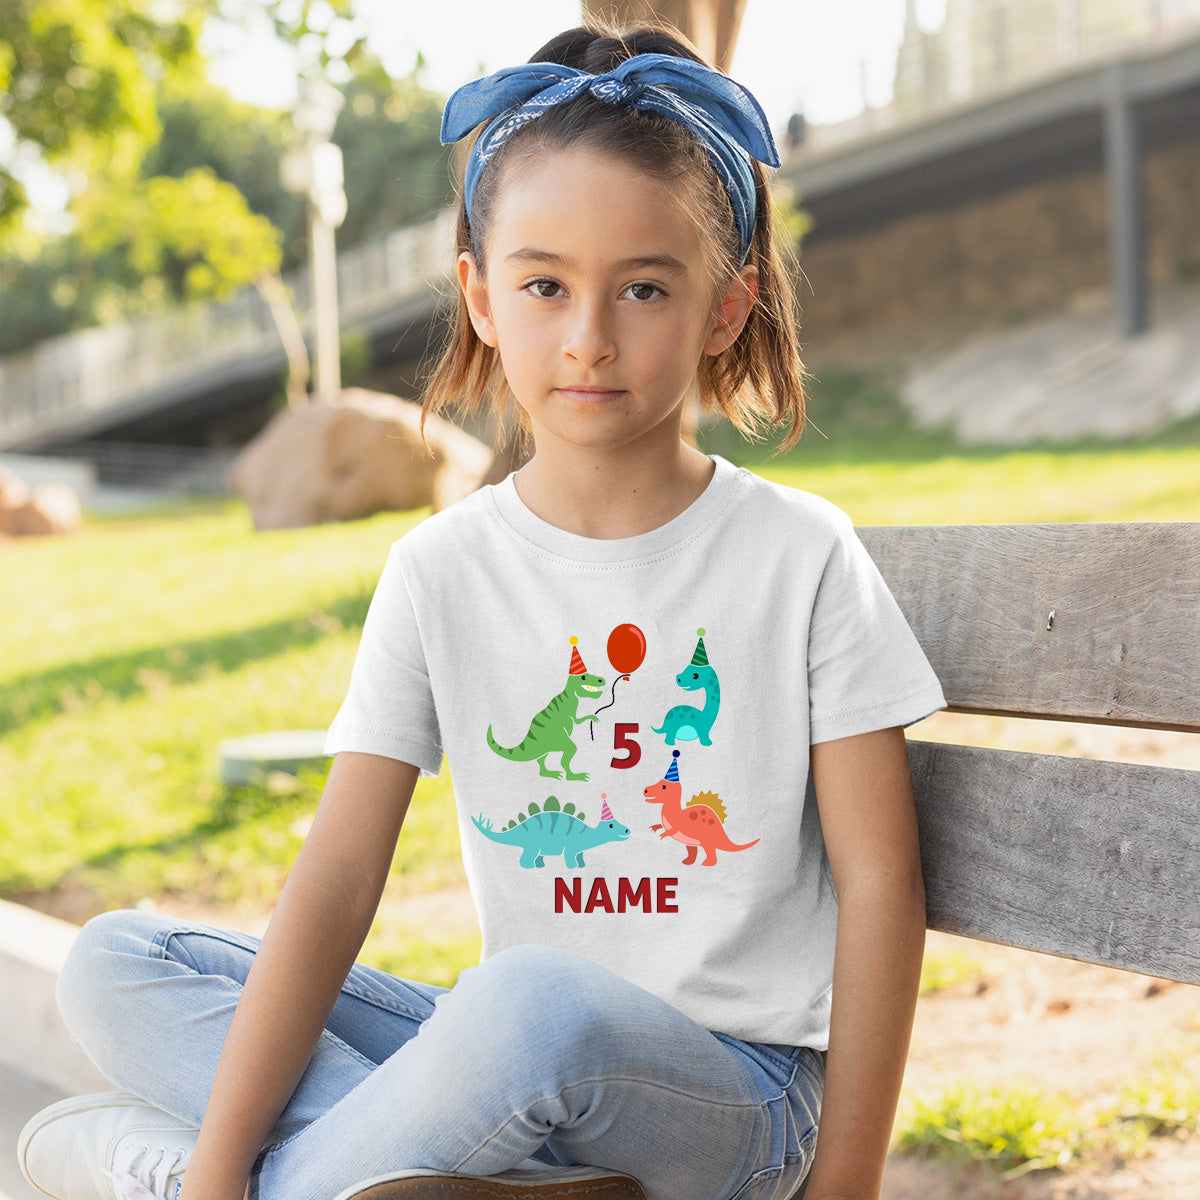 Sprinklecart Dinosaur Birthday Tee Gift | Personalized 5th Birthday Wear for Your Little One